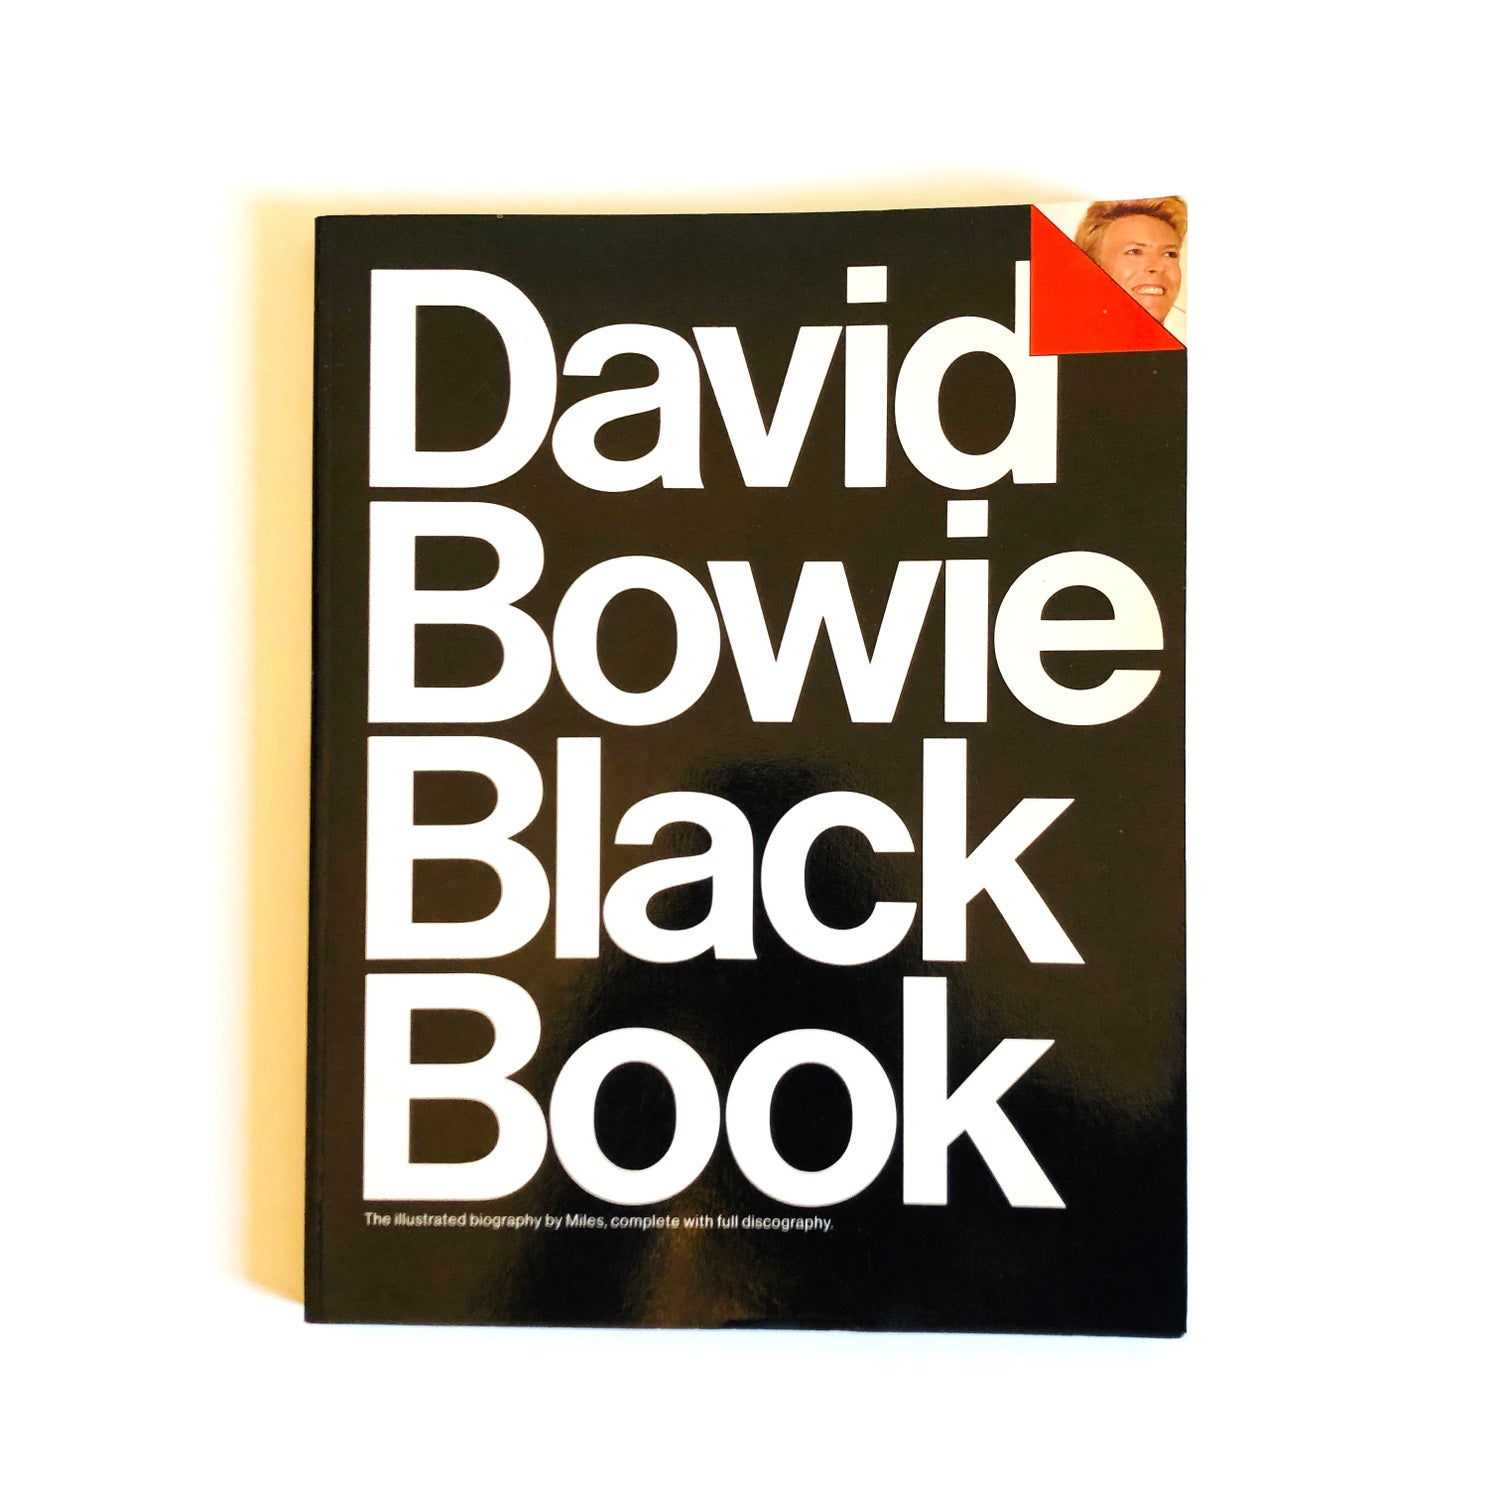 Image of David Bowie Black Book by Barry Miles